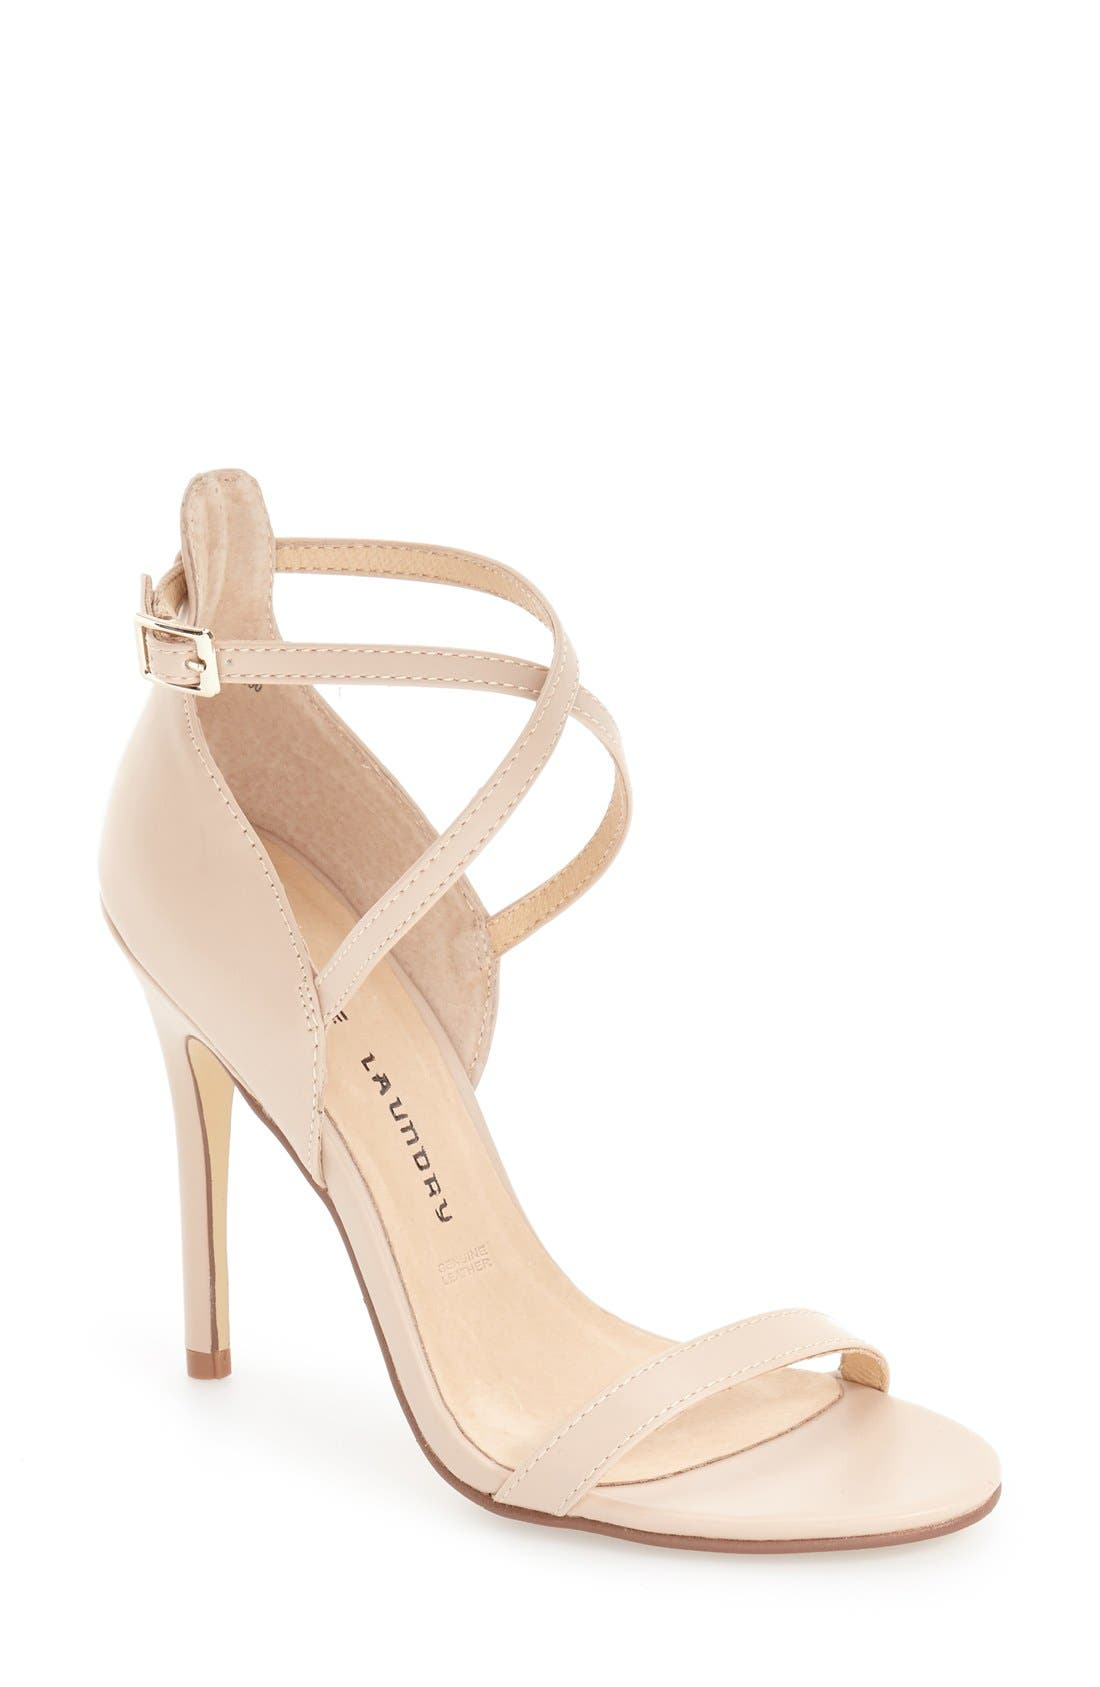 CHINESE LAUNDRY Lavelle Ankle Strap Sandal